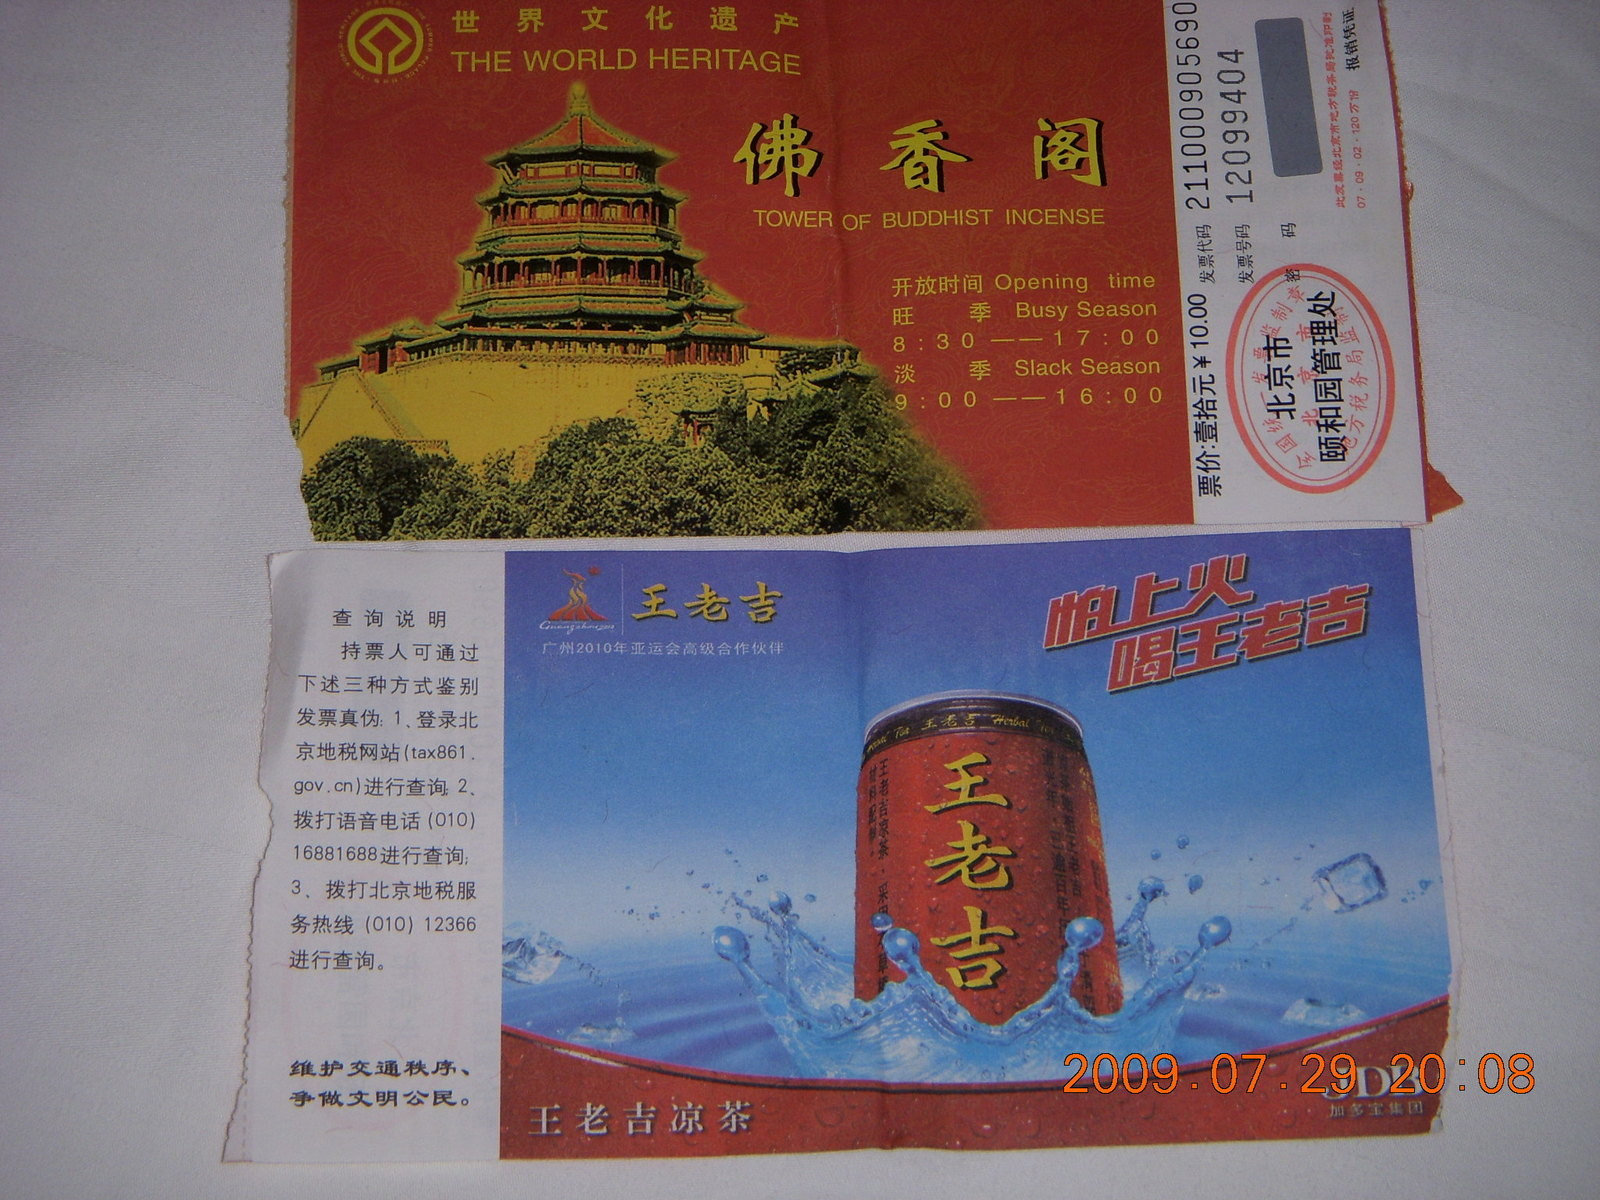 China eclipse - Beijing - Summer Palace Buddha temple ticket front and back